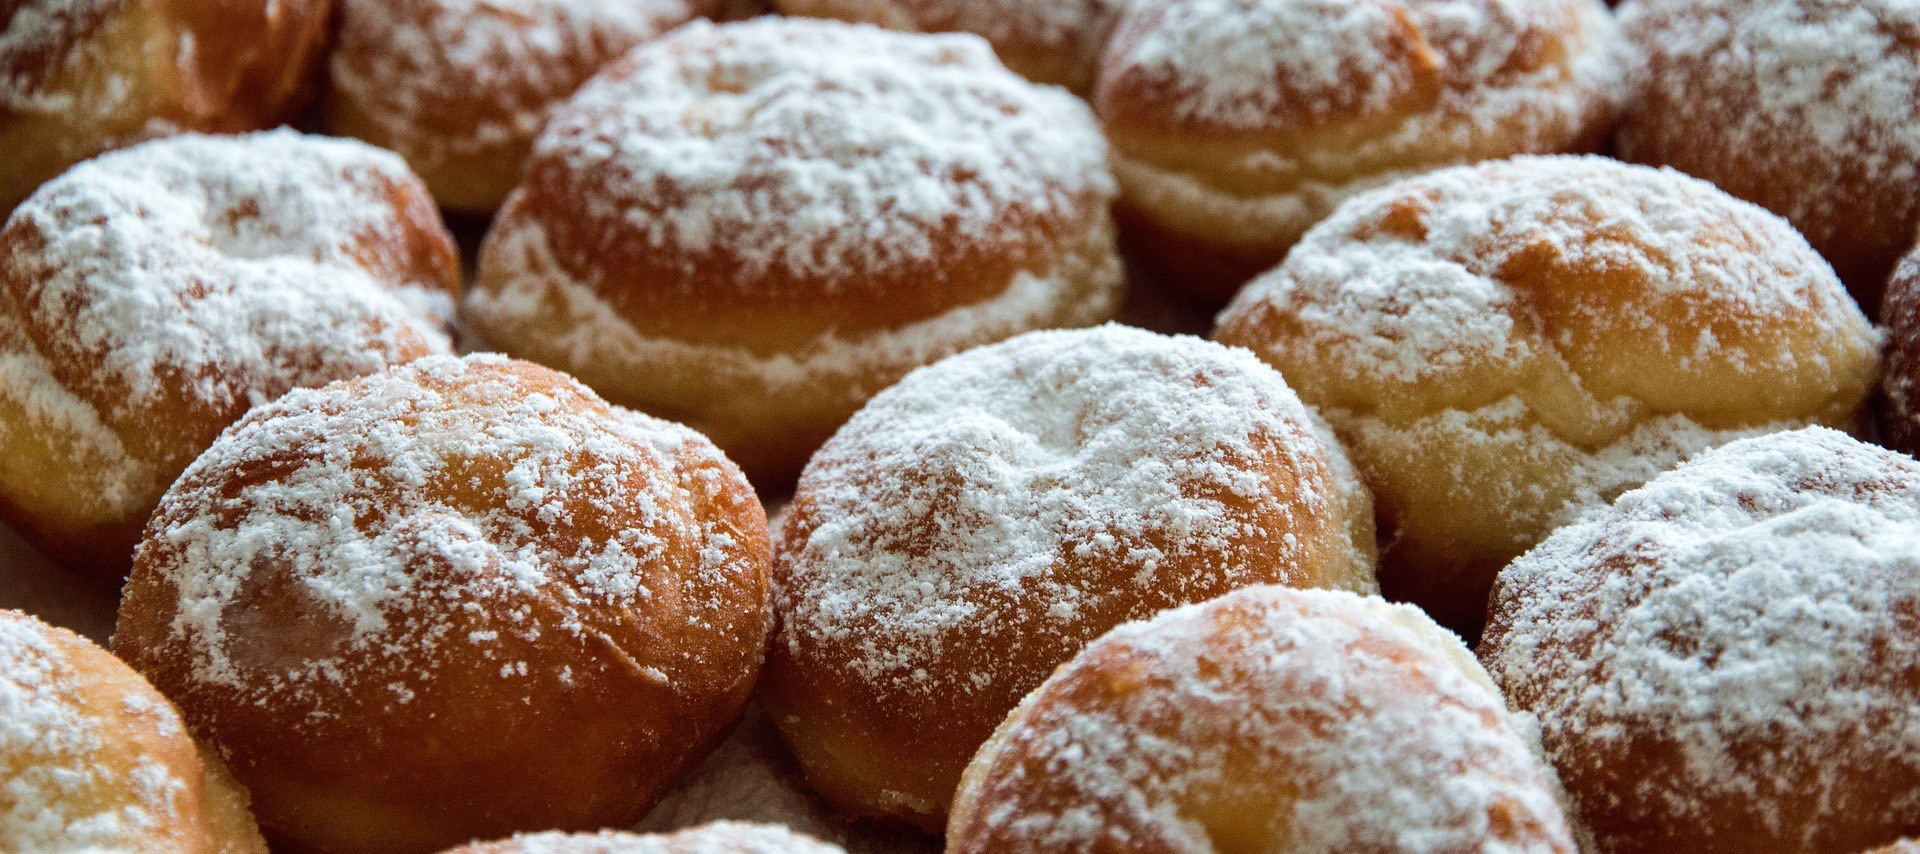 Will You Be Eating Pączki Or Faworki For Polish Fat Thursday